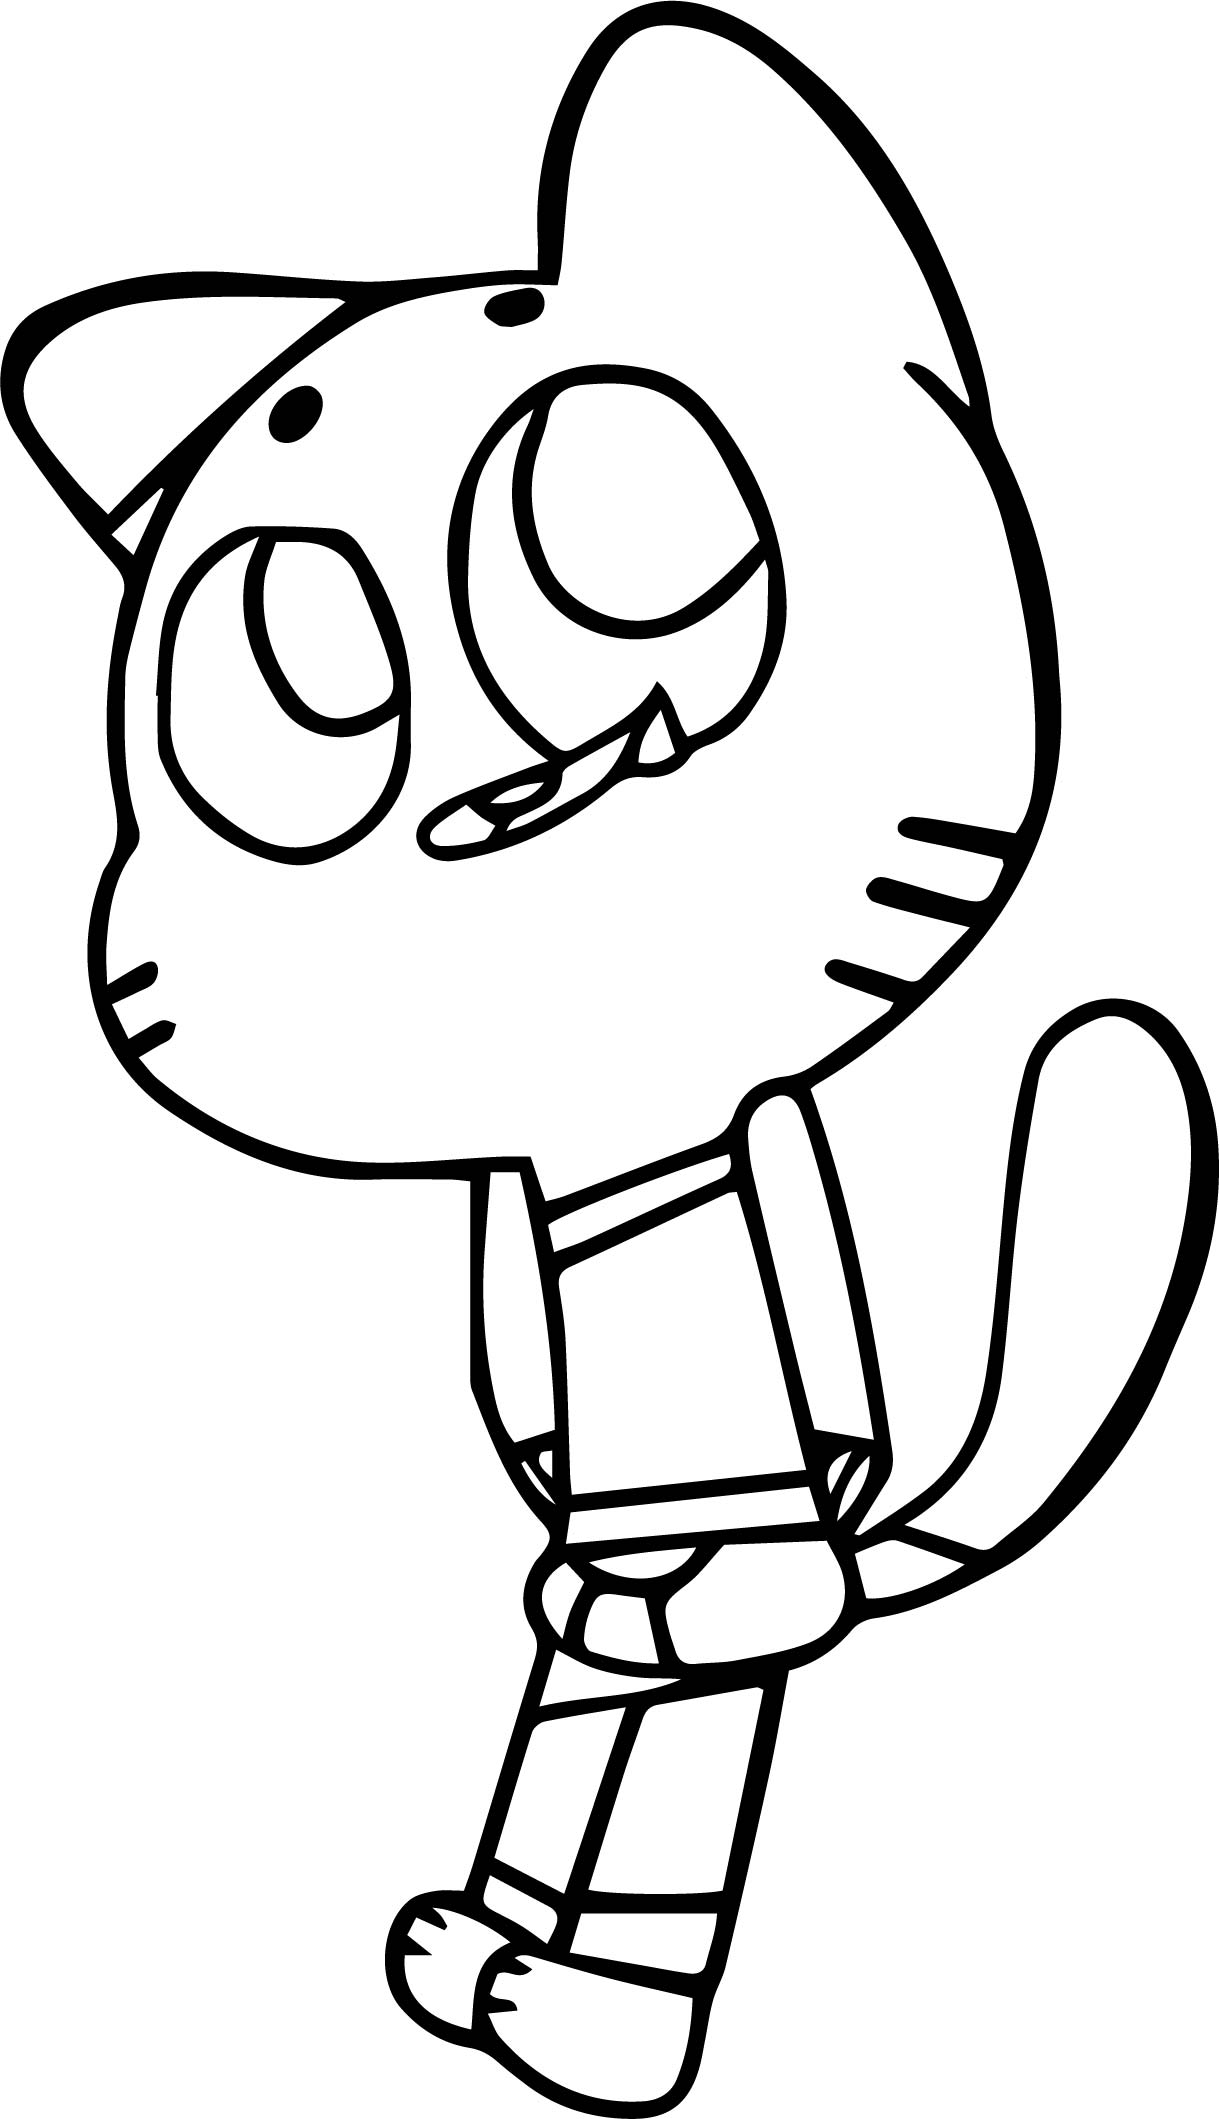 The Amazing World Of Gumball Image Coloring Page